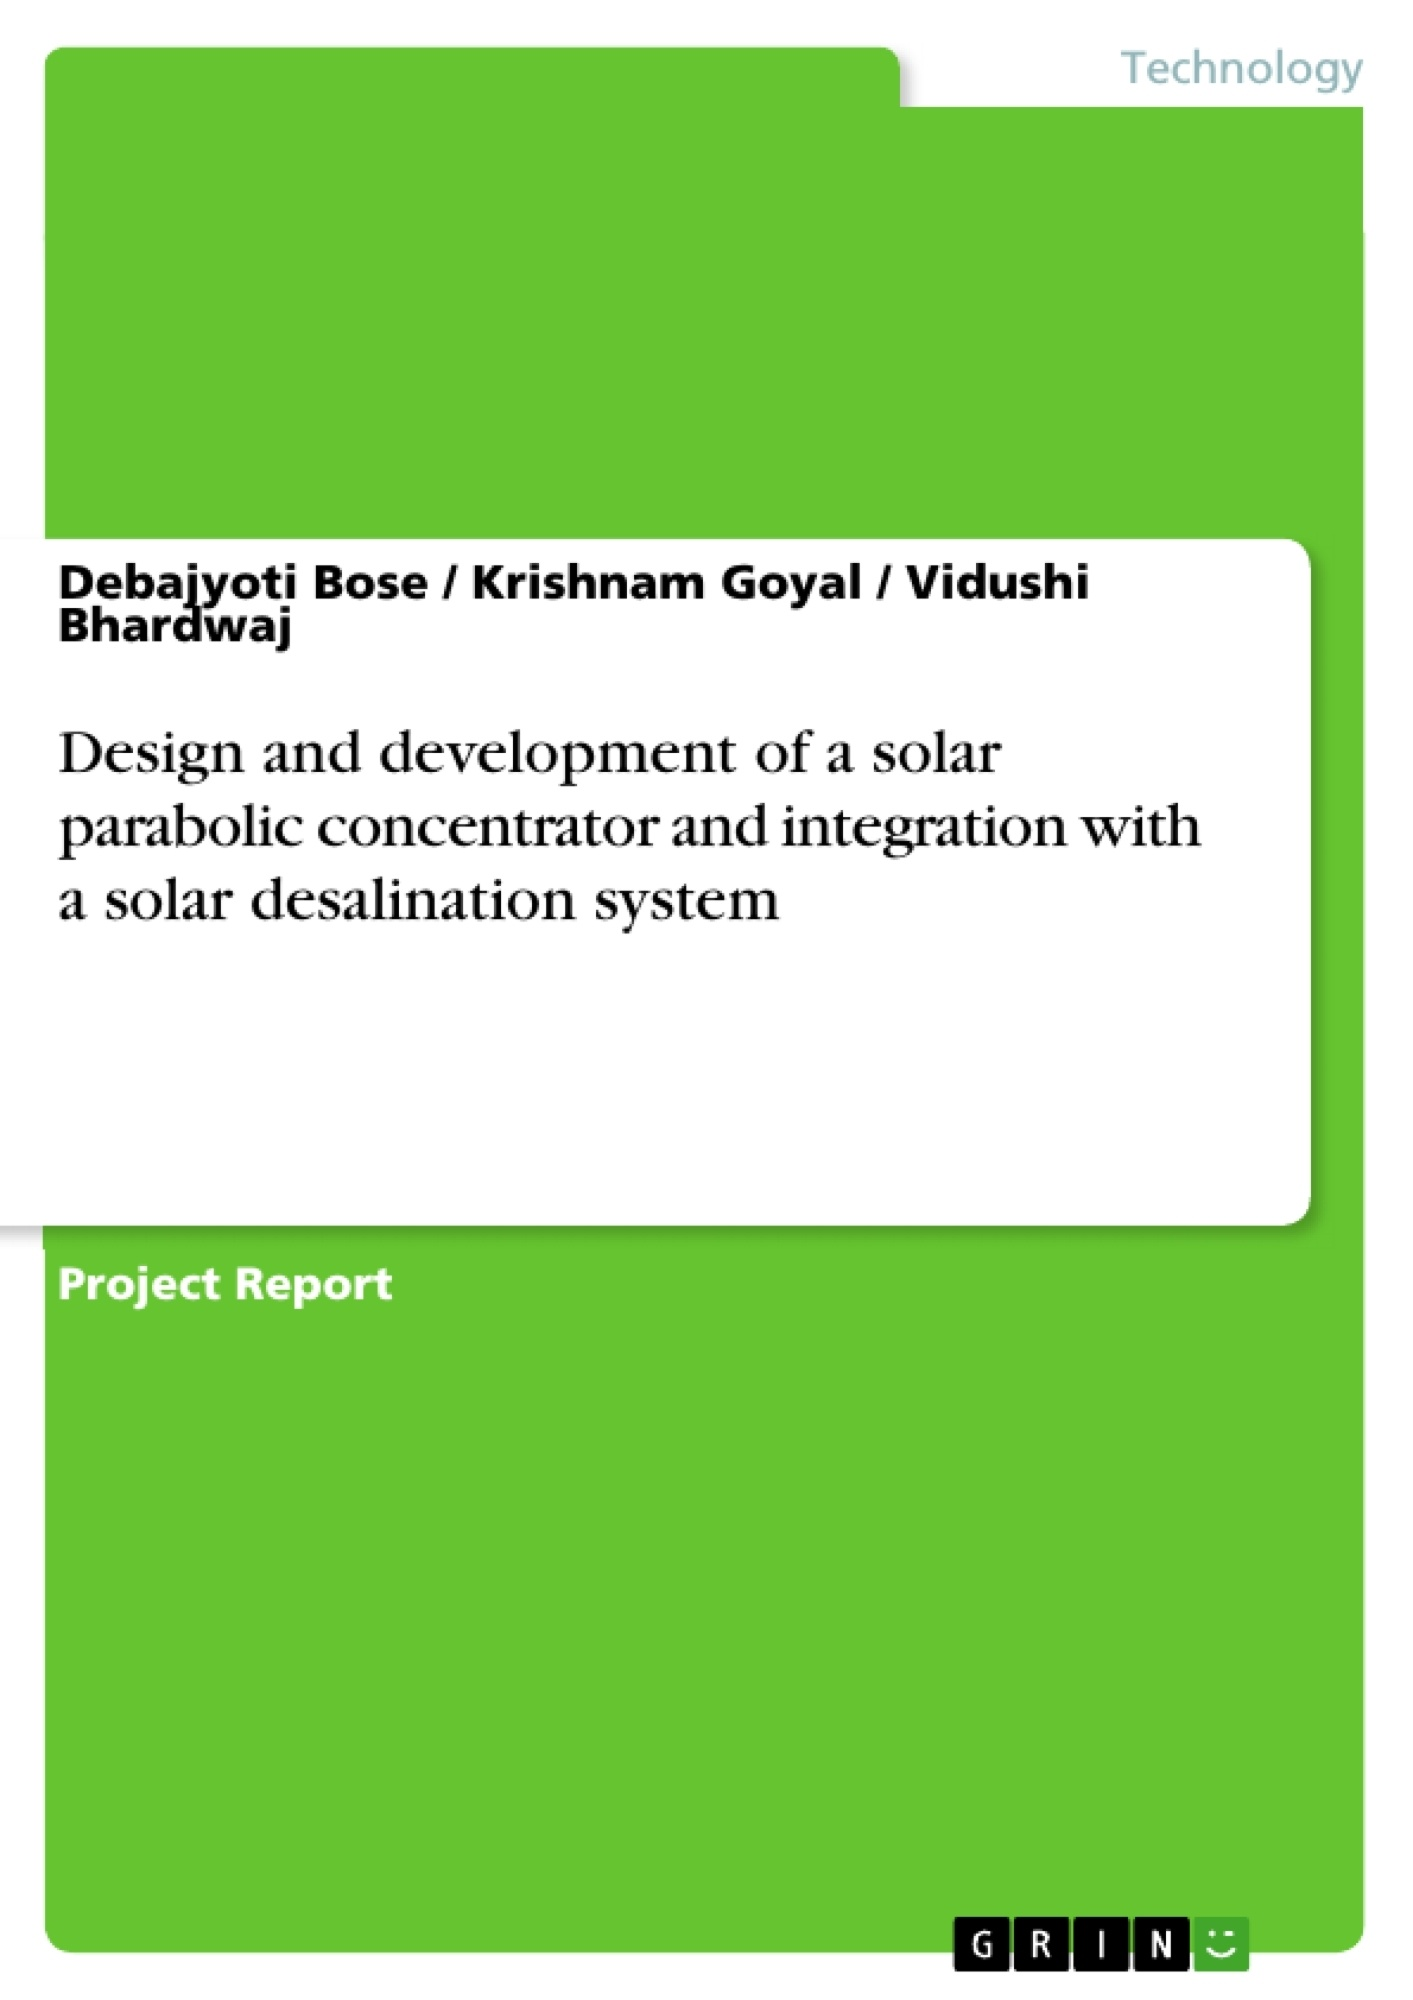 Design and development of a solar parabolic concentrator and